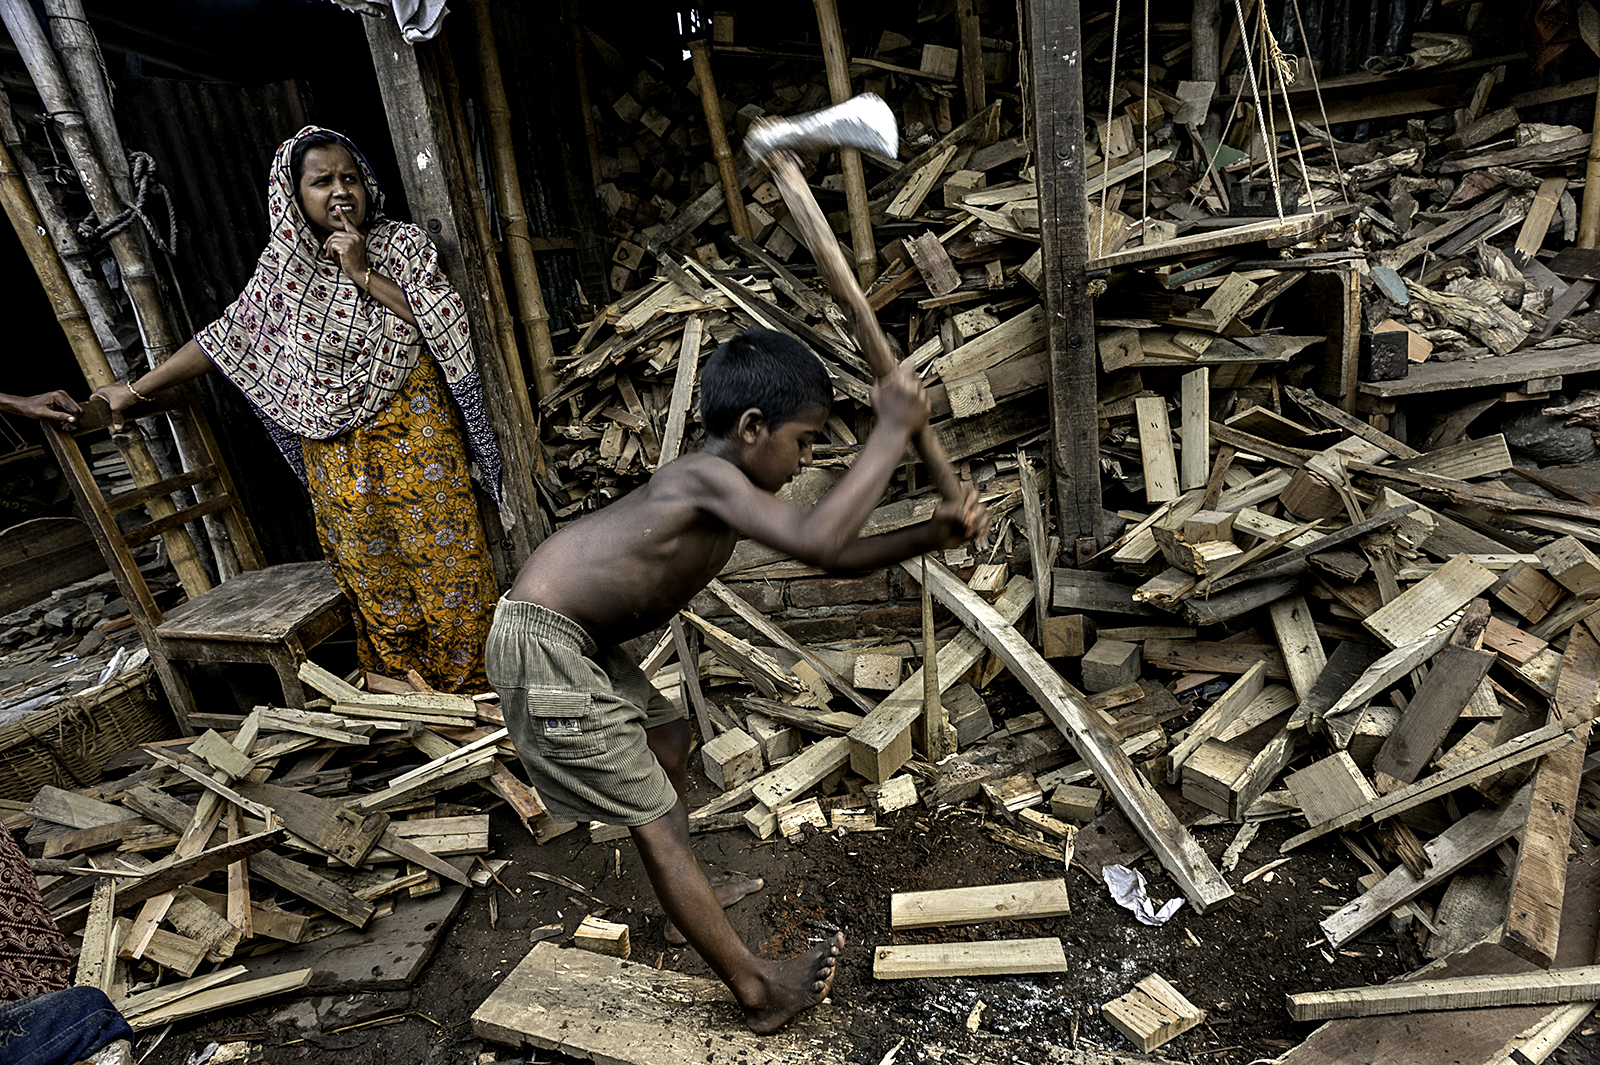 In another area of Bangladesh, Saiful, 9, works splitting wood without shoes or any kind of protective gear. Few children who work as he does are given any rights in the workplace, for legally they are too young to be working at all. ©  Renée C. Byer